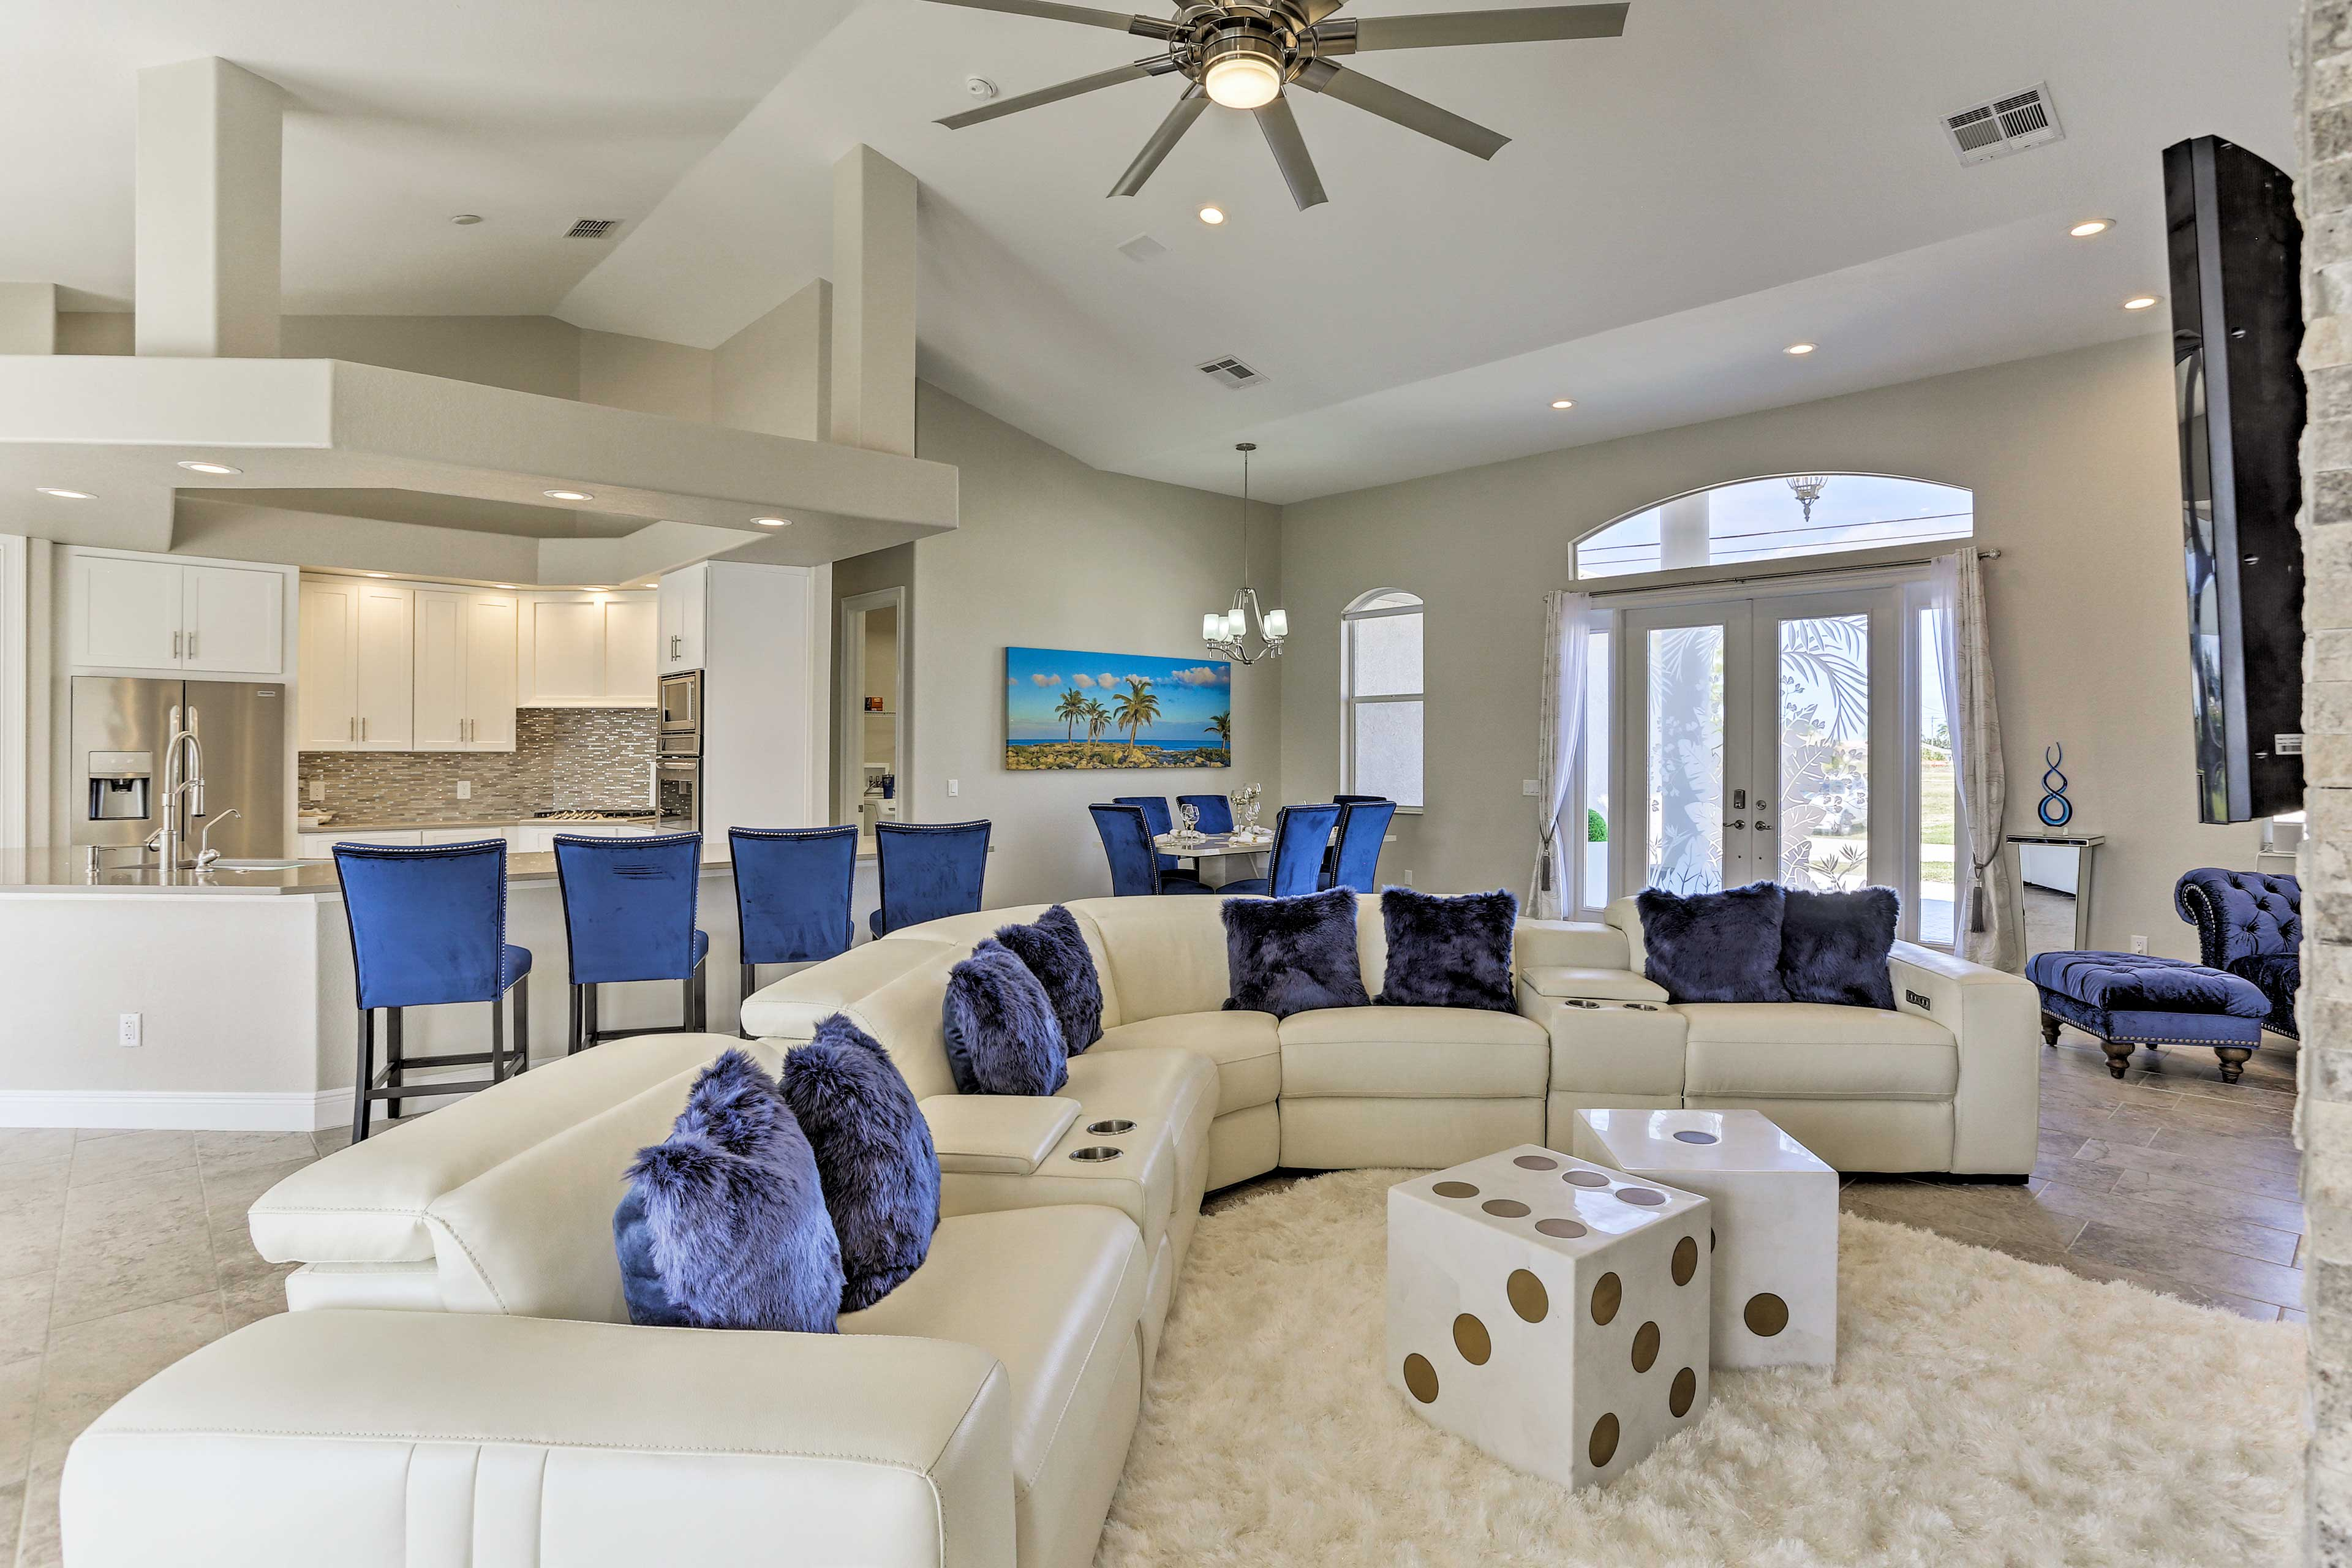 The interior features 2,600 square feet of carefully desinged living space.